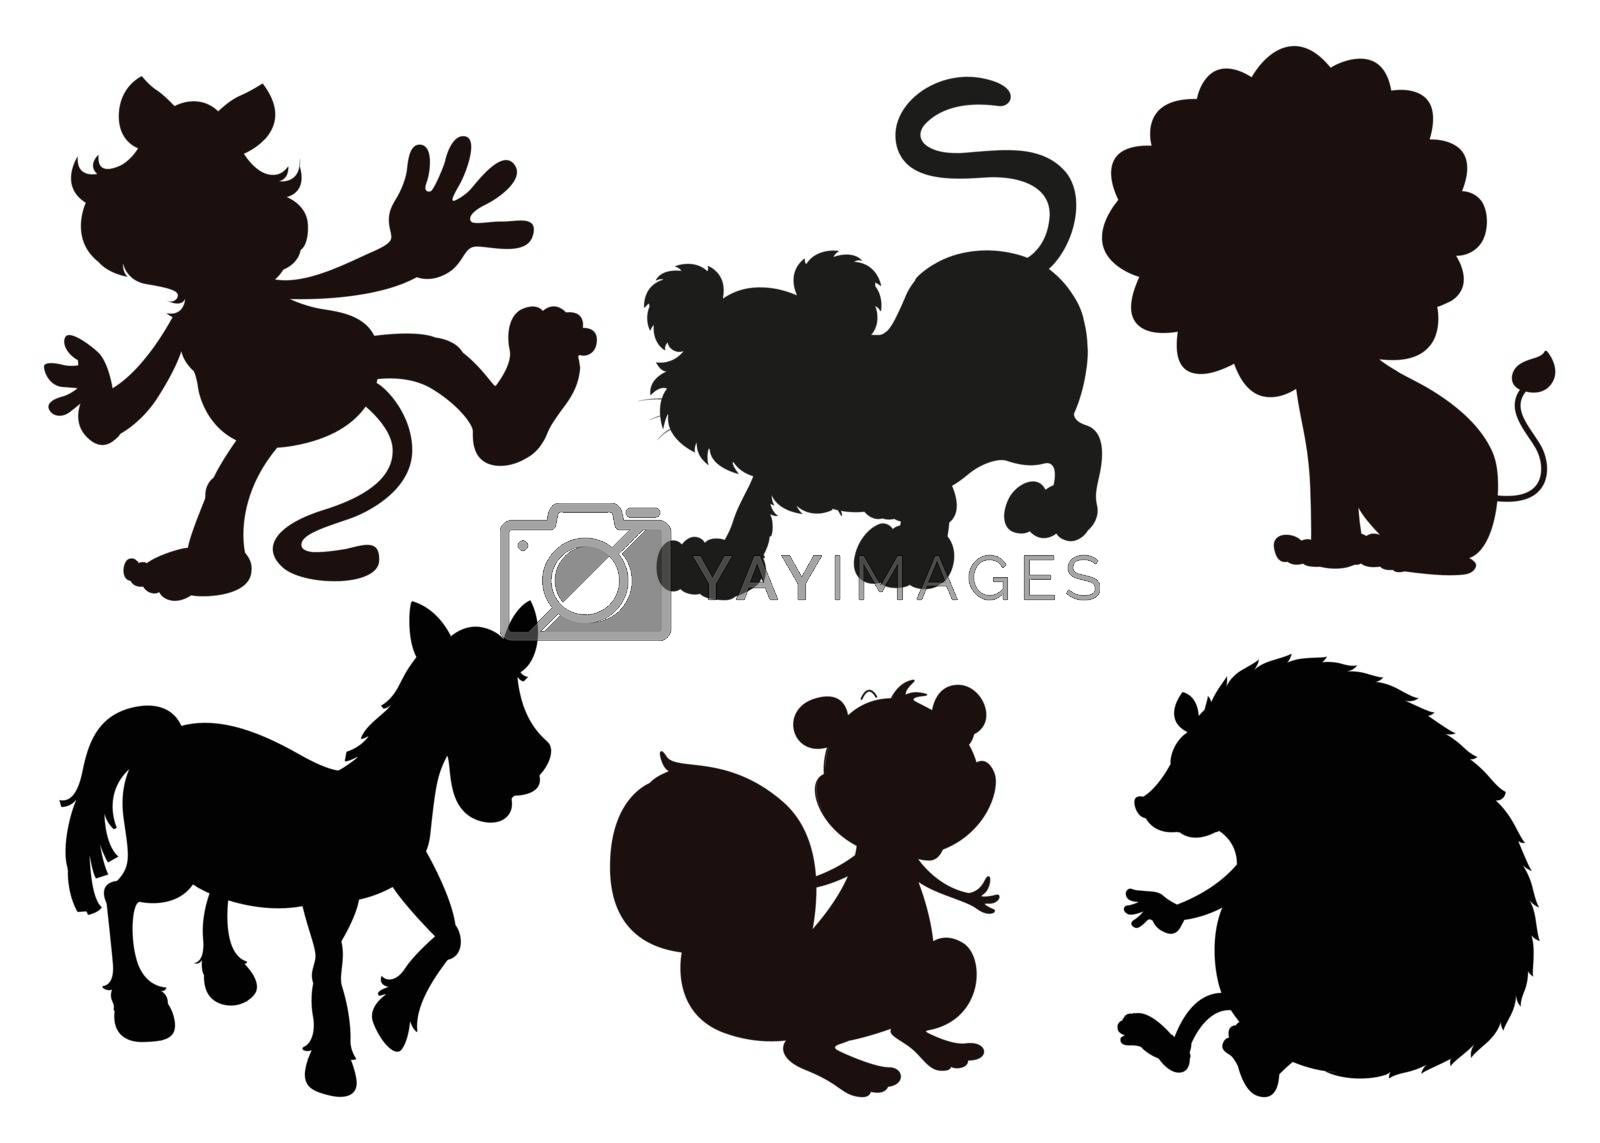 Illustration of the animals in black colored images on a white background